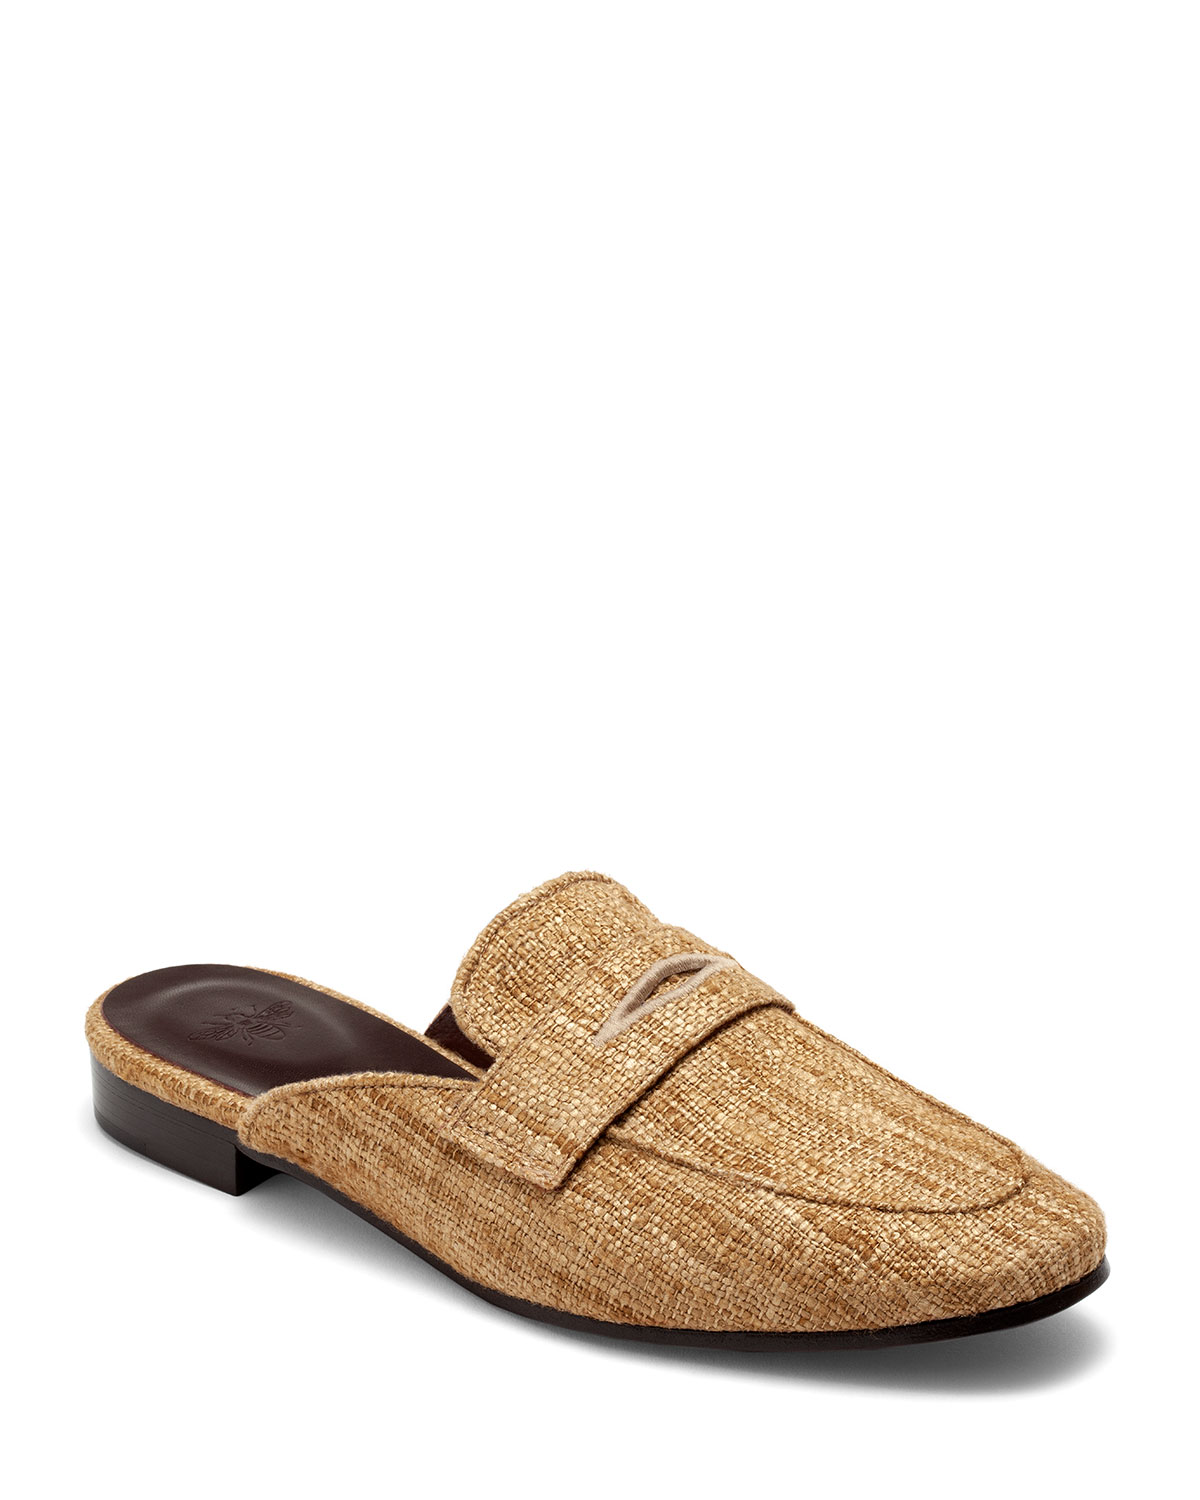 Bougeotte Penny Loafer Slip-On Mules